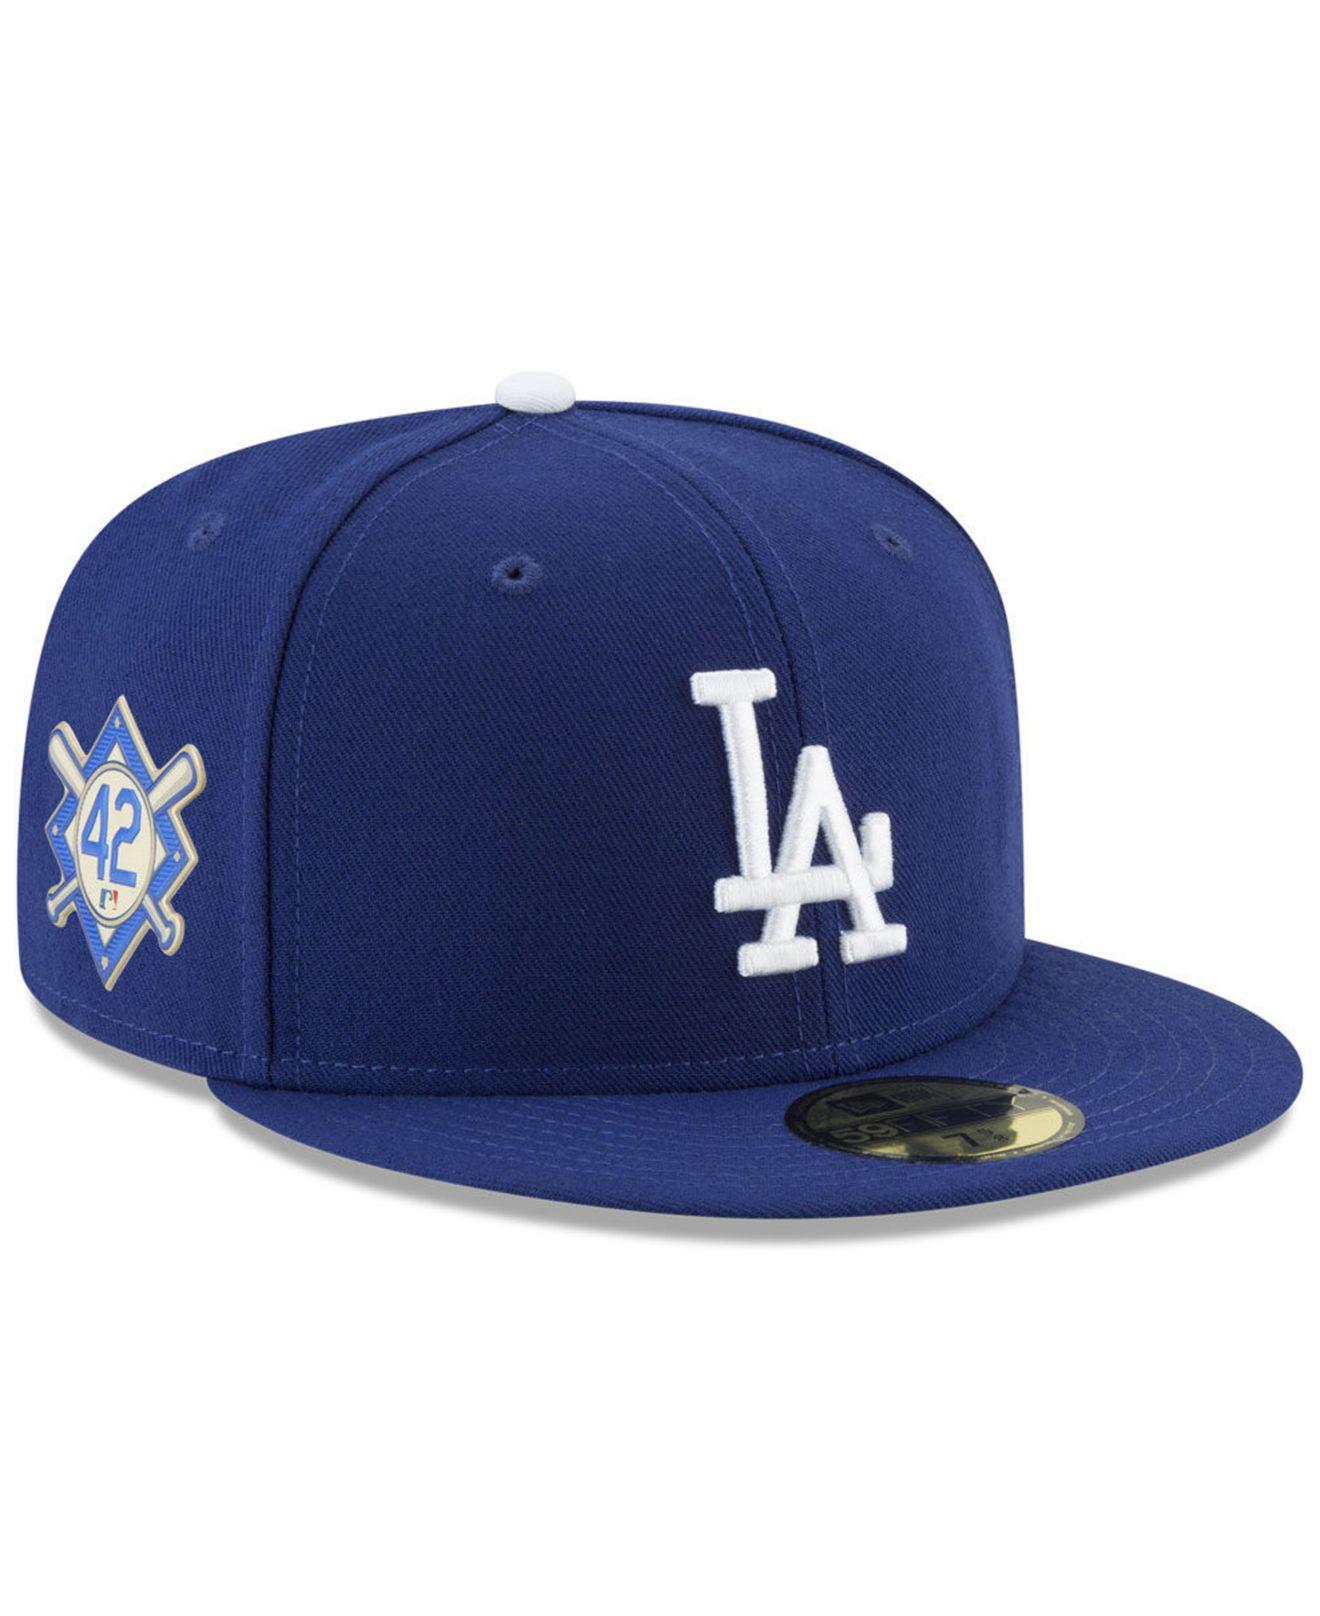 on sale ec66d ca425 ... Los Angeles Dodgers Jackie Robinson Day 59fifty Fitted Cap for Men -  Lyst. View fullscreen